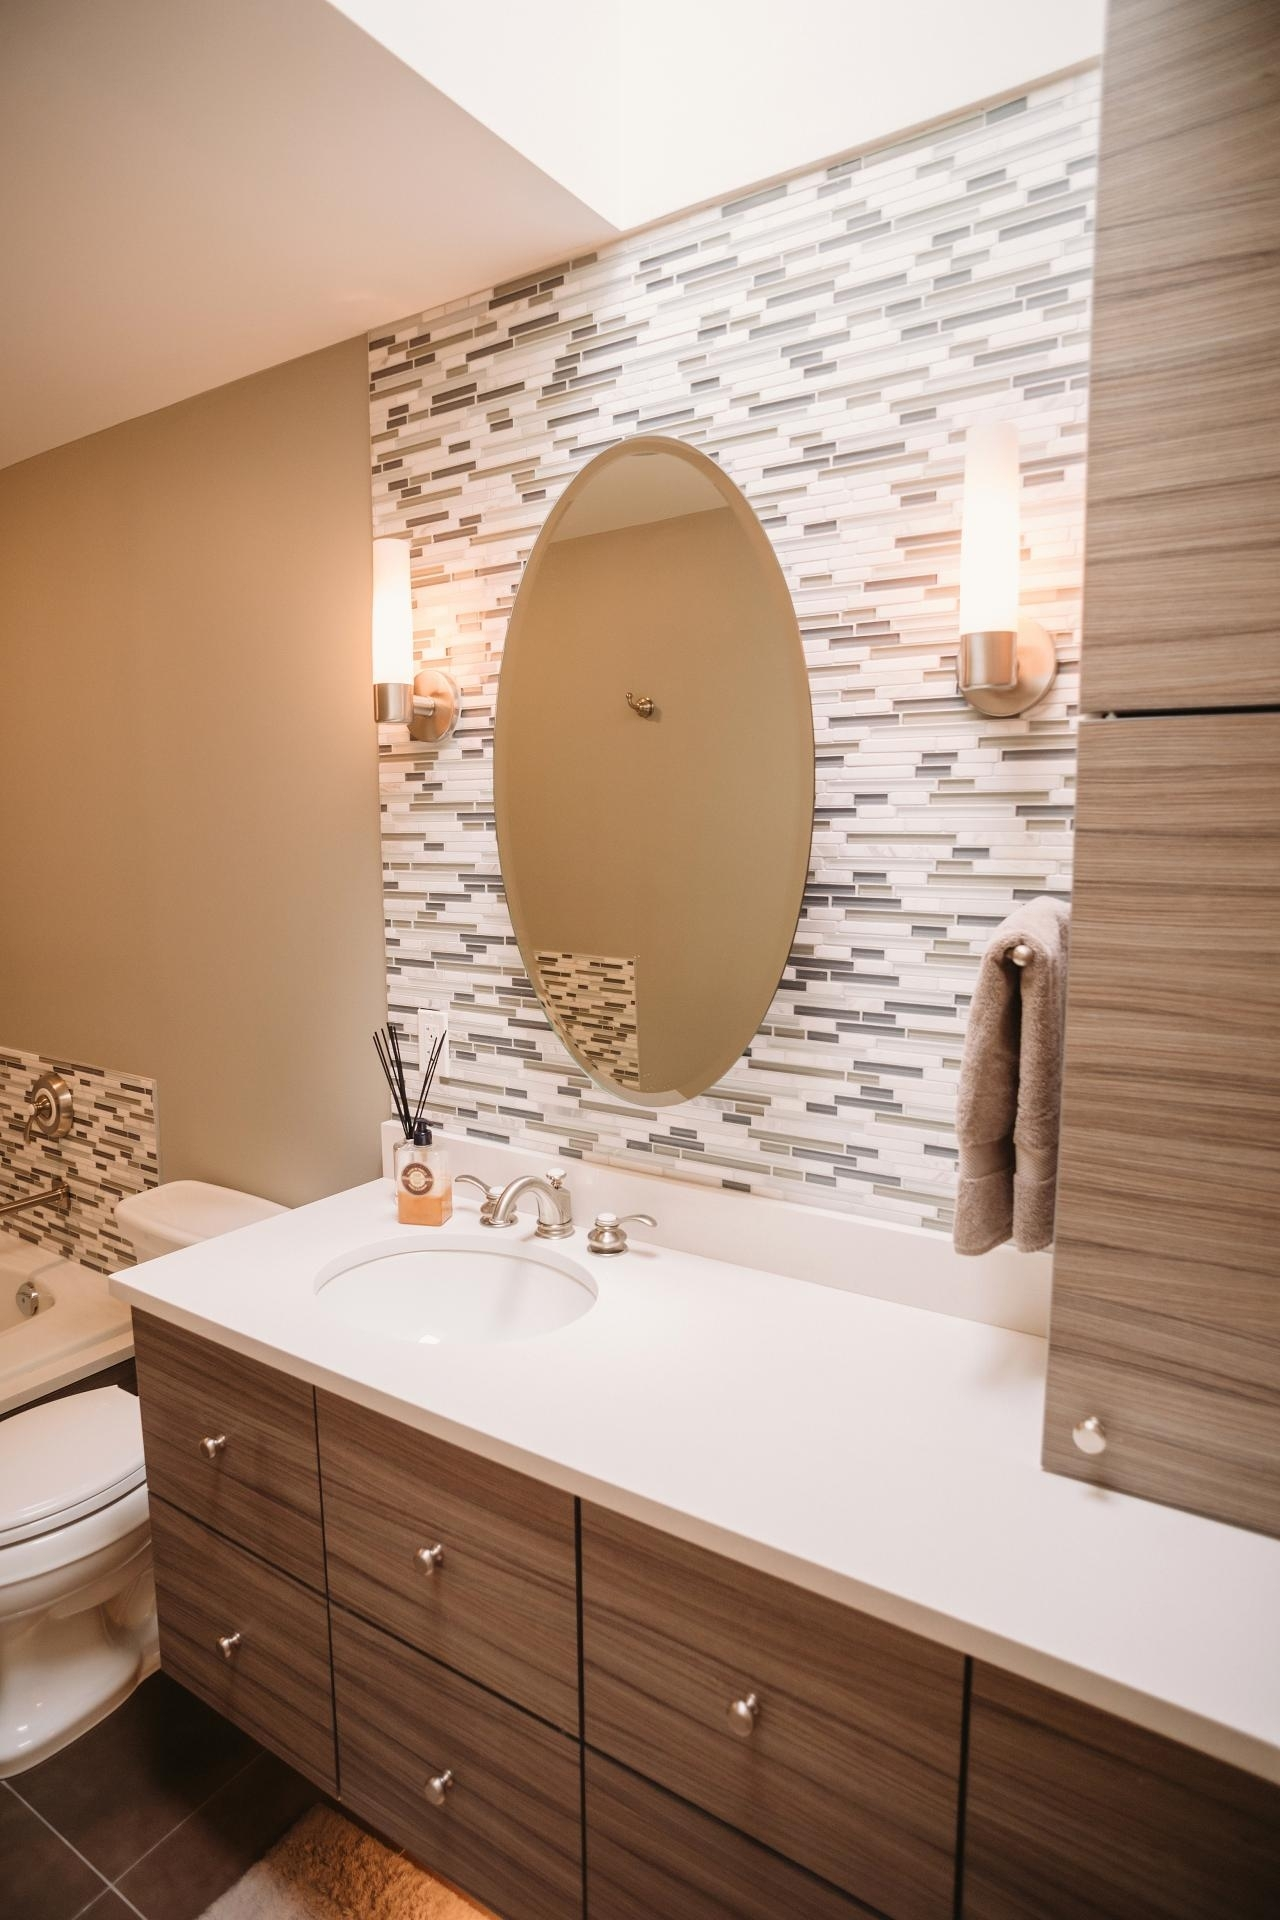 Latest Posts Under: Bathroom Accent Wall | Bathroom Design 2017 With Regard To Recent Wall Accents For Bathroom (Gallery 4 of 15)